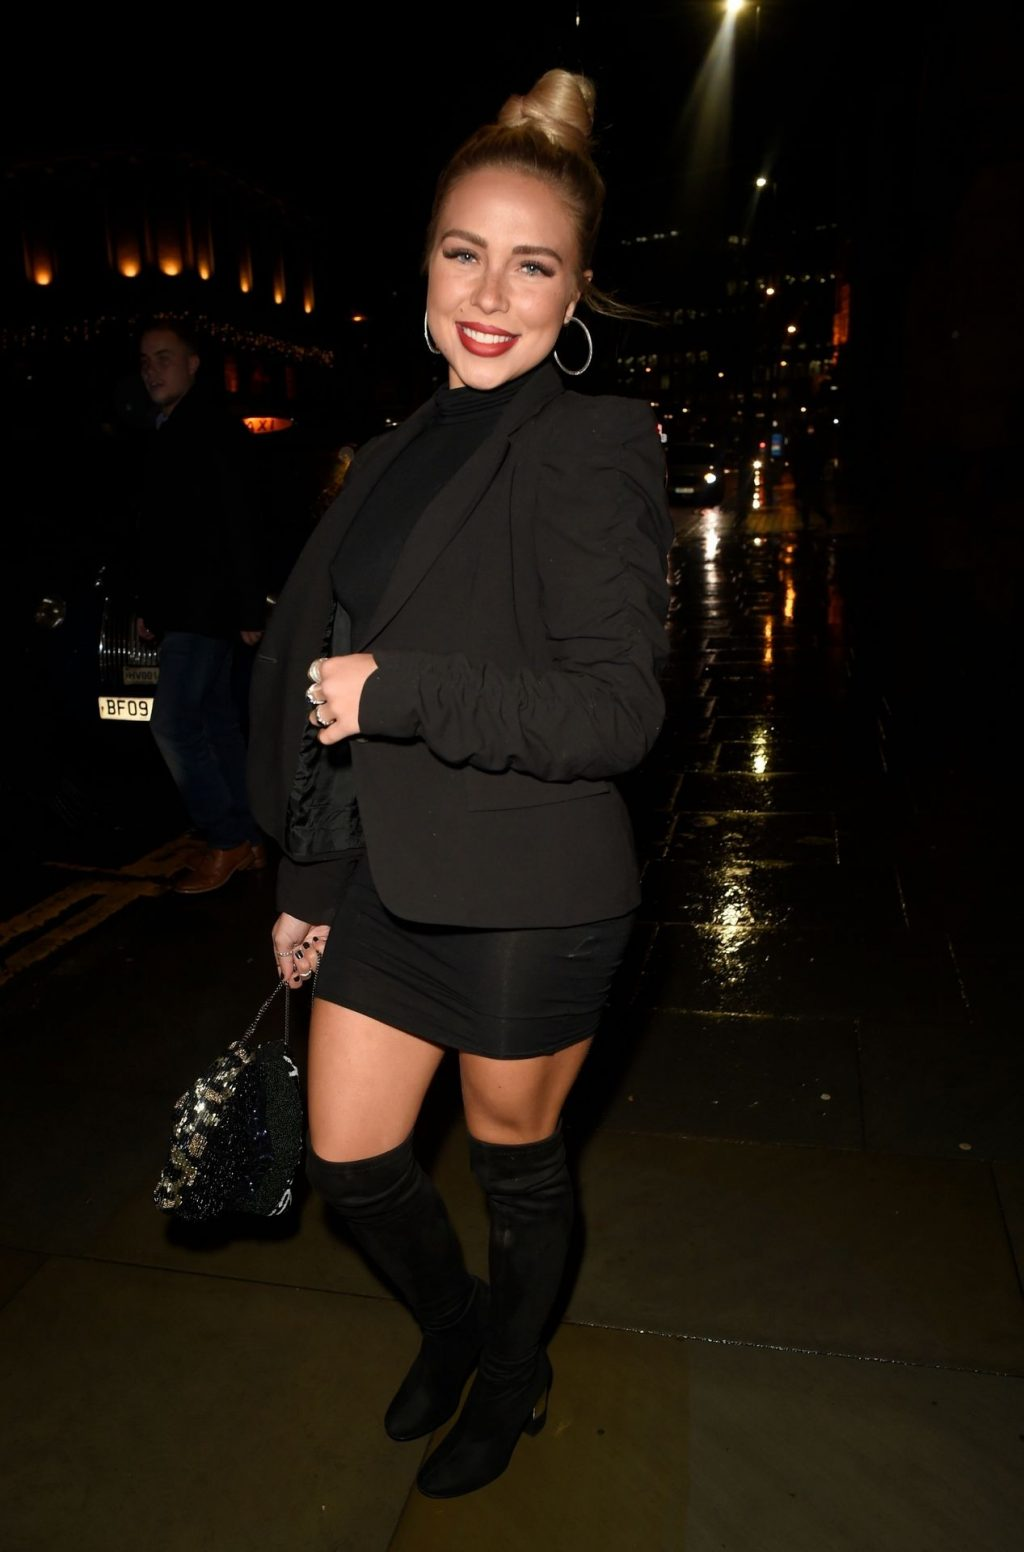 Gabby Allen Pictured Braless in Manchester (26 Photos)